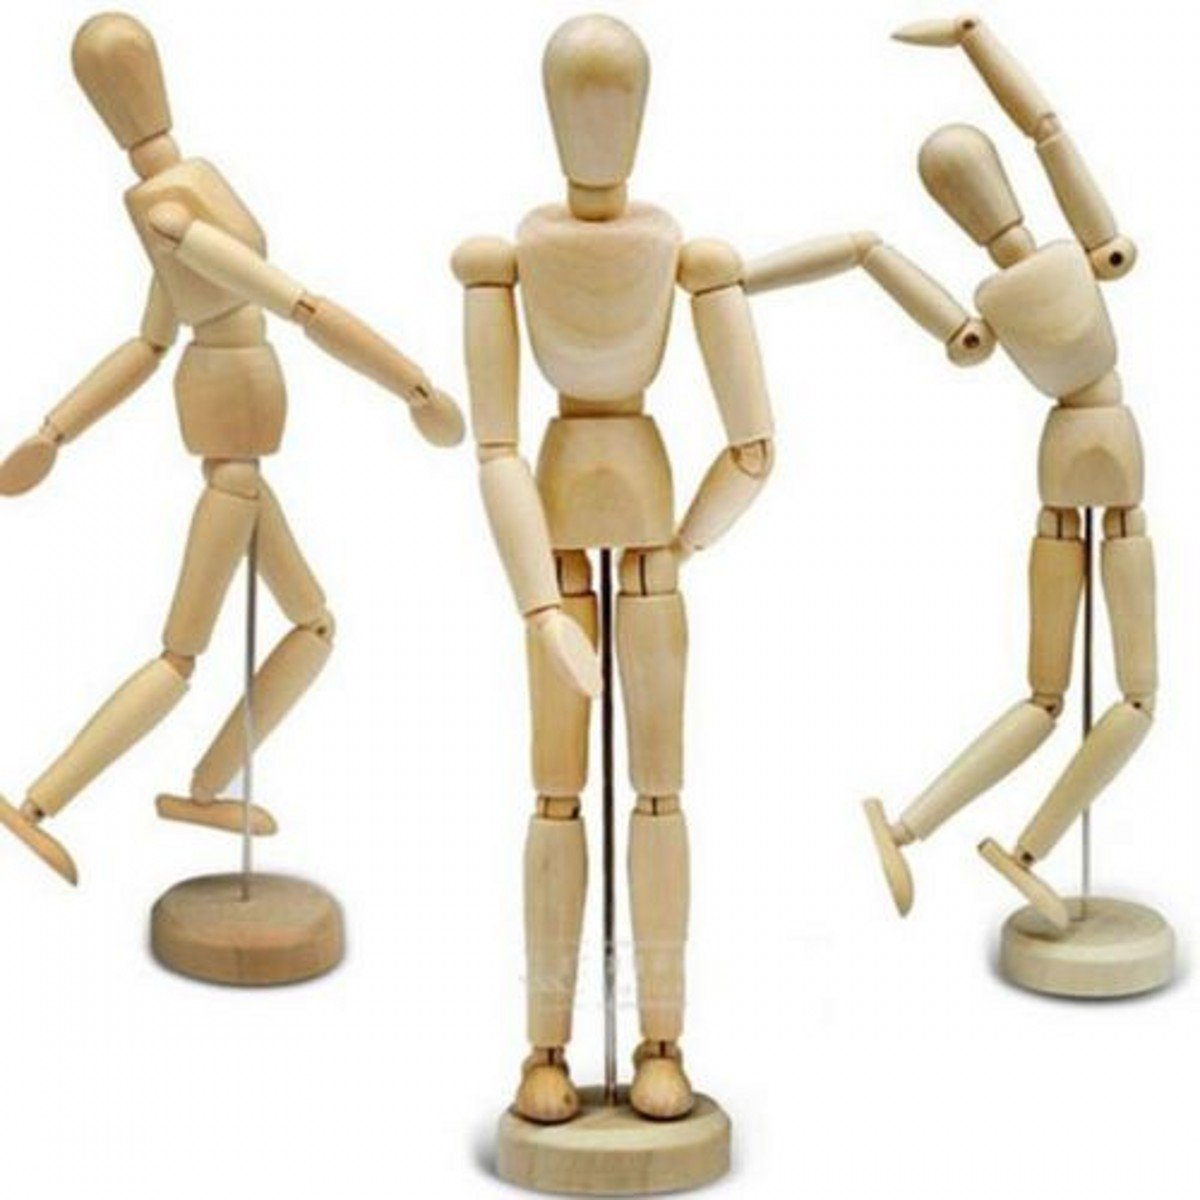 5-1//2 Inch 14ARTIST WOODEN MANIKIN MANNEQUIN SKETCH SKETCHING LAY FIGURE DRAWING MODEL AID